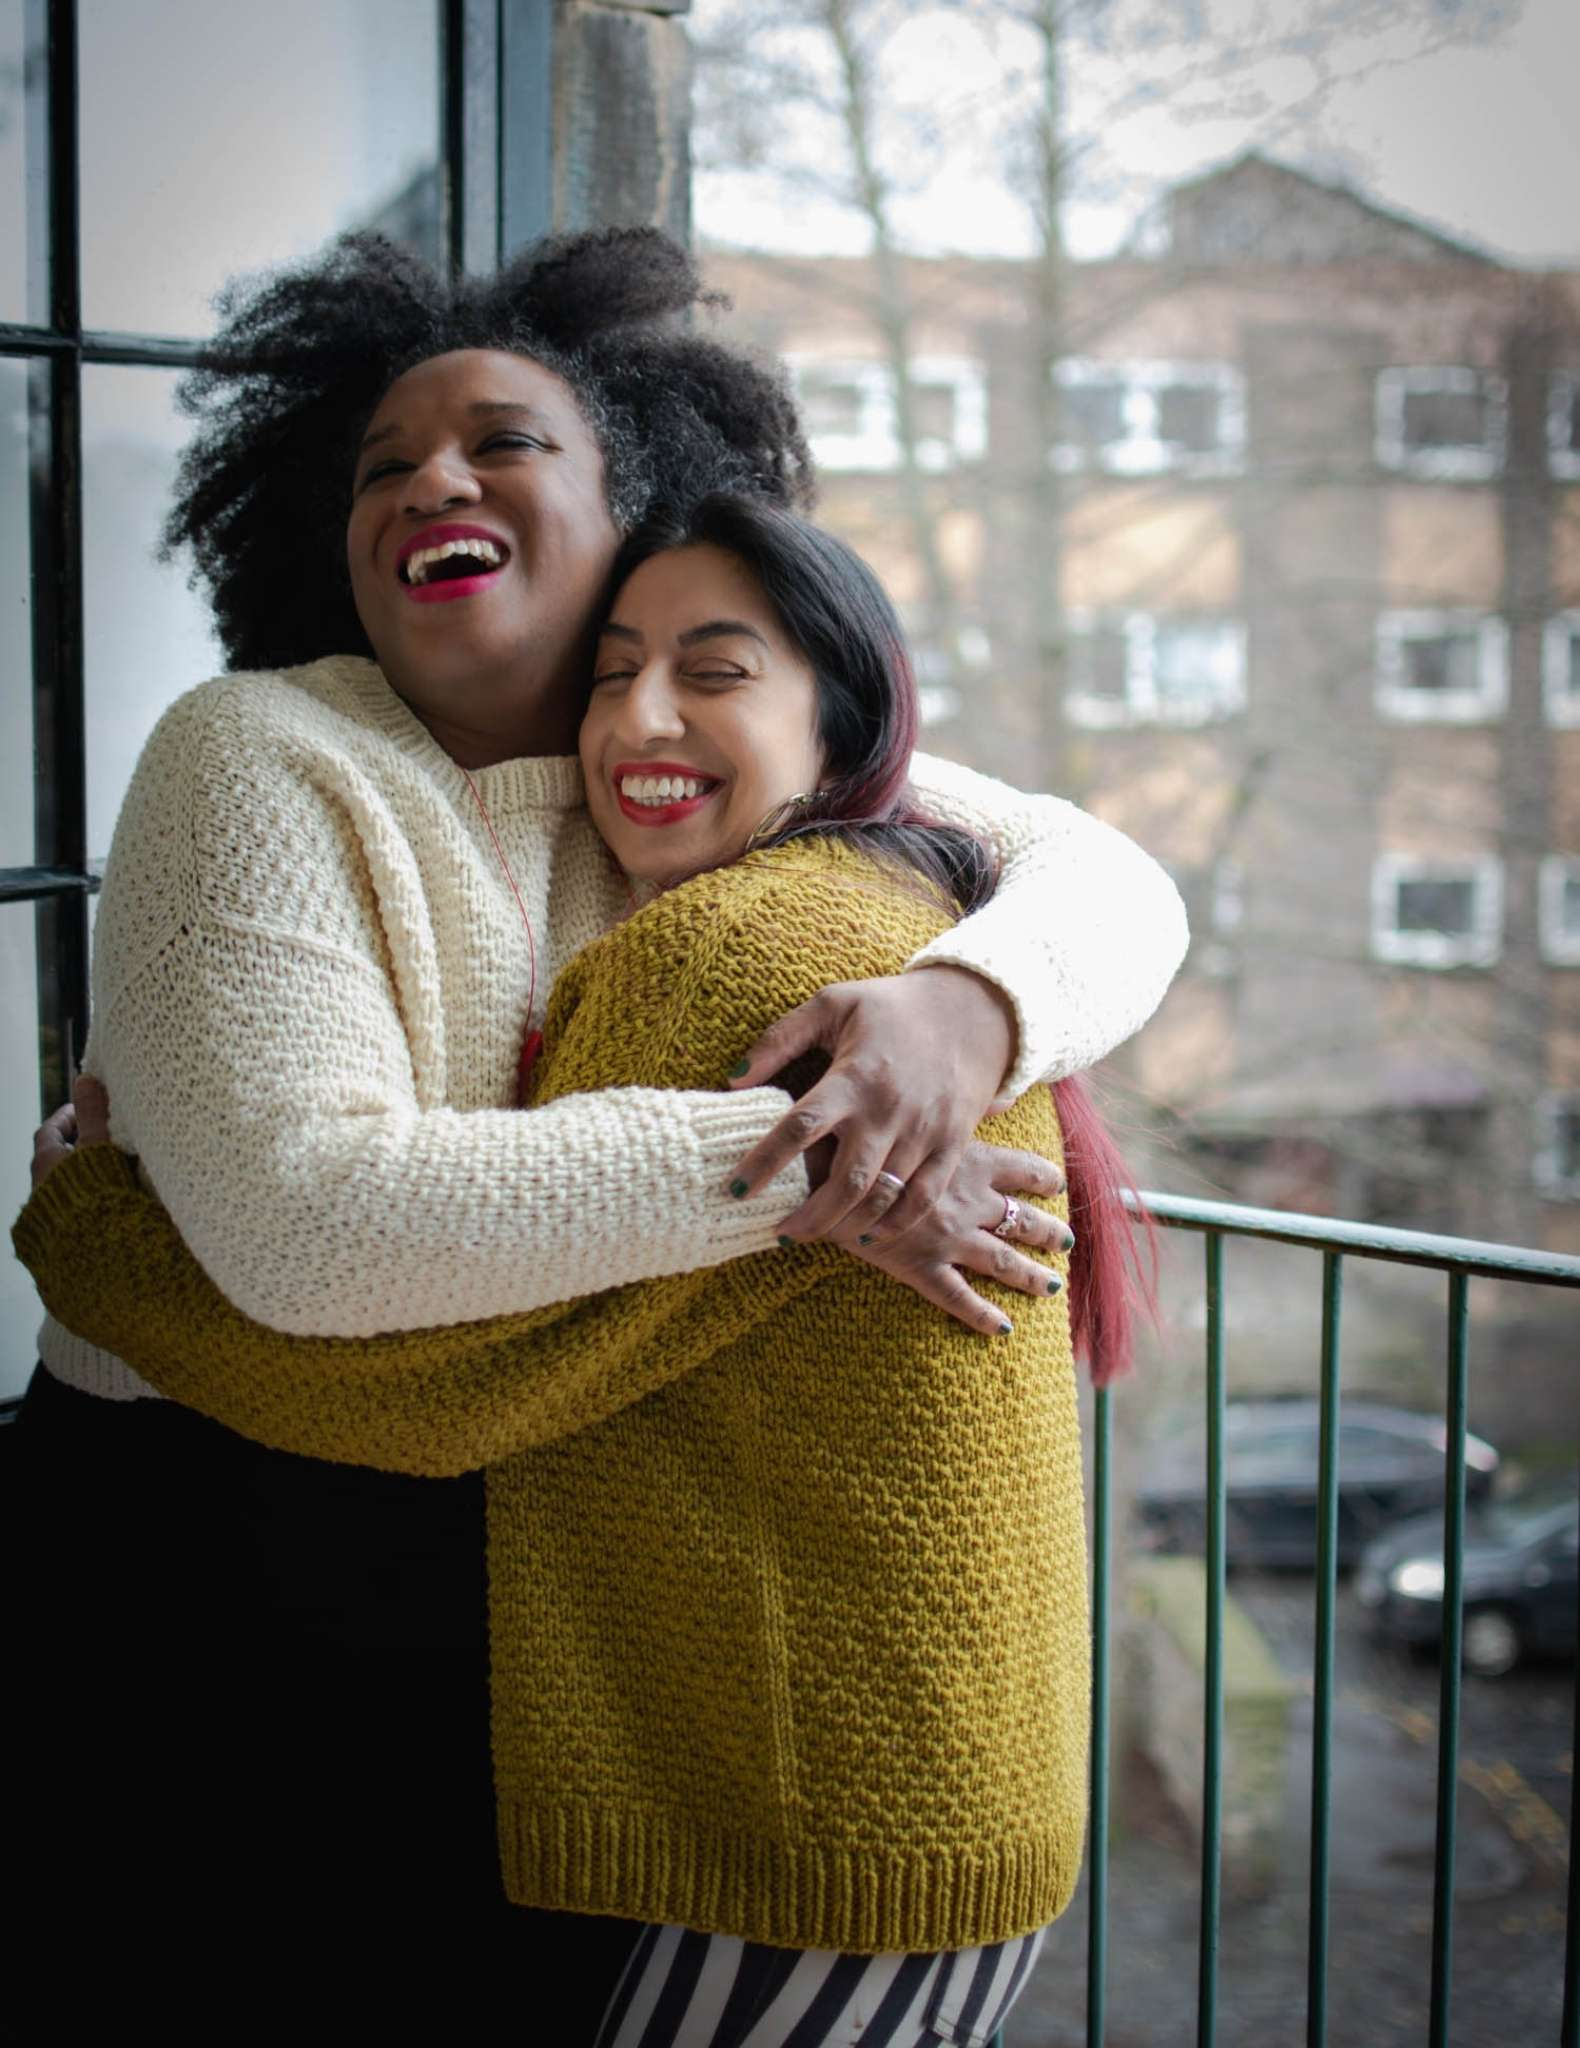 Two models stand indoors in front of a window, looking out onto a street. One wears a cream sweater and the other wears a gold sweater, they have their arms around each other in a tight hug and are grinning.